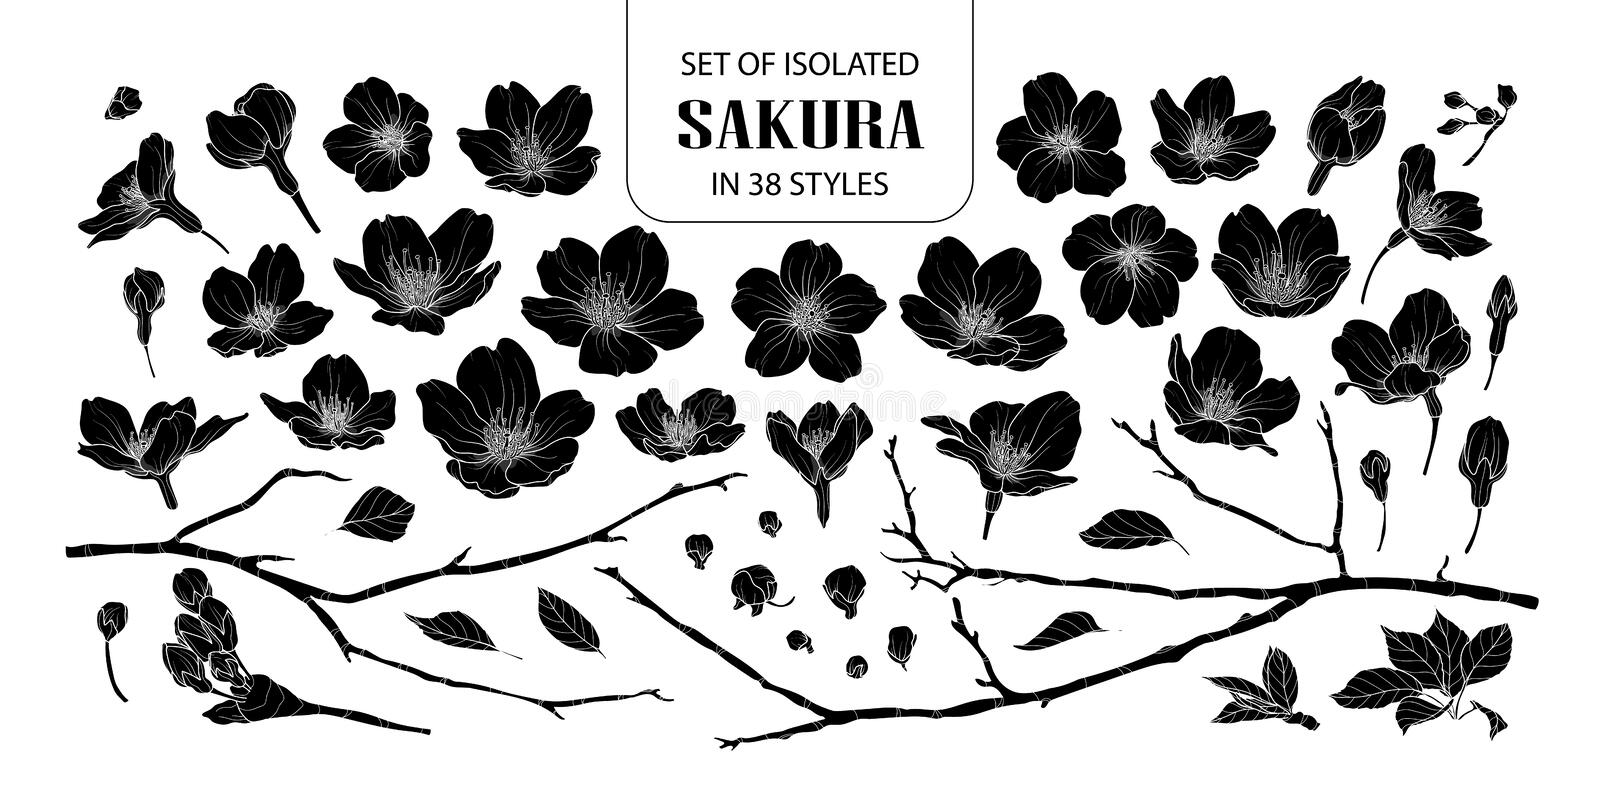 Set of isolated silhouette sakura in 38 styles. vector illustration